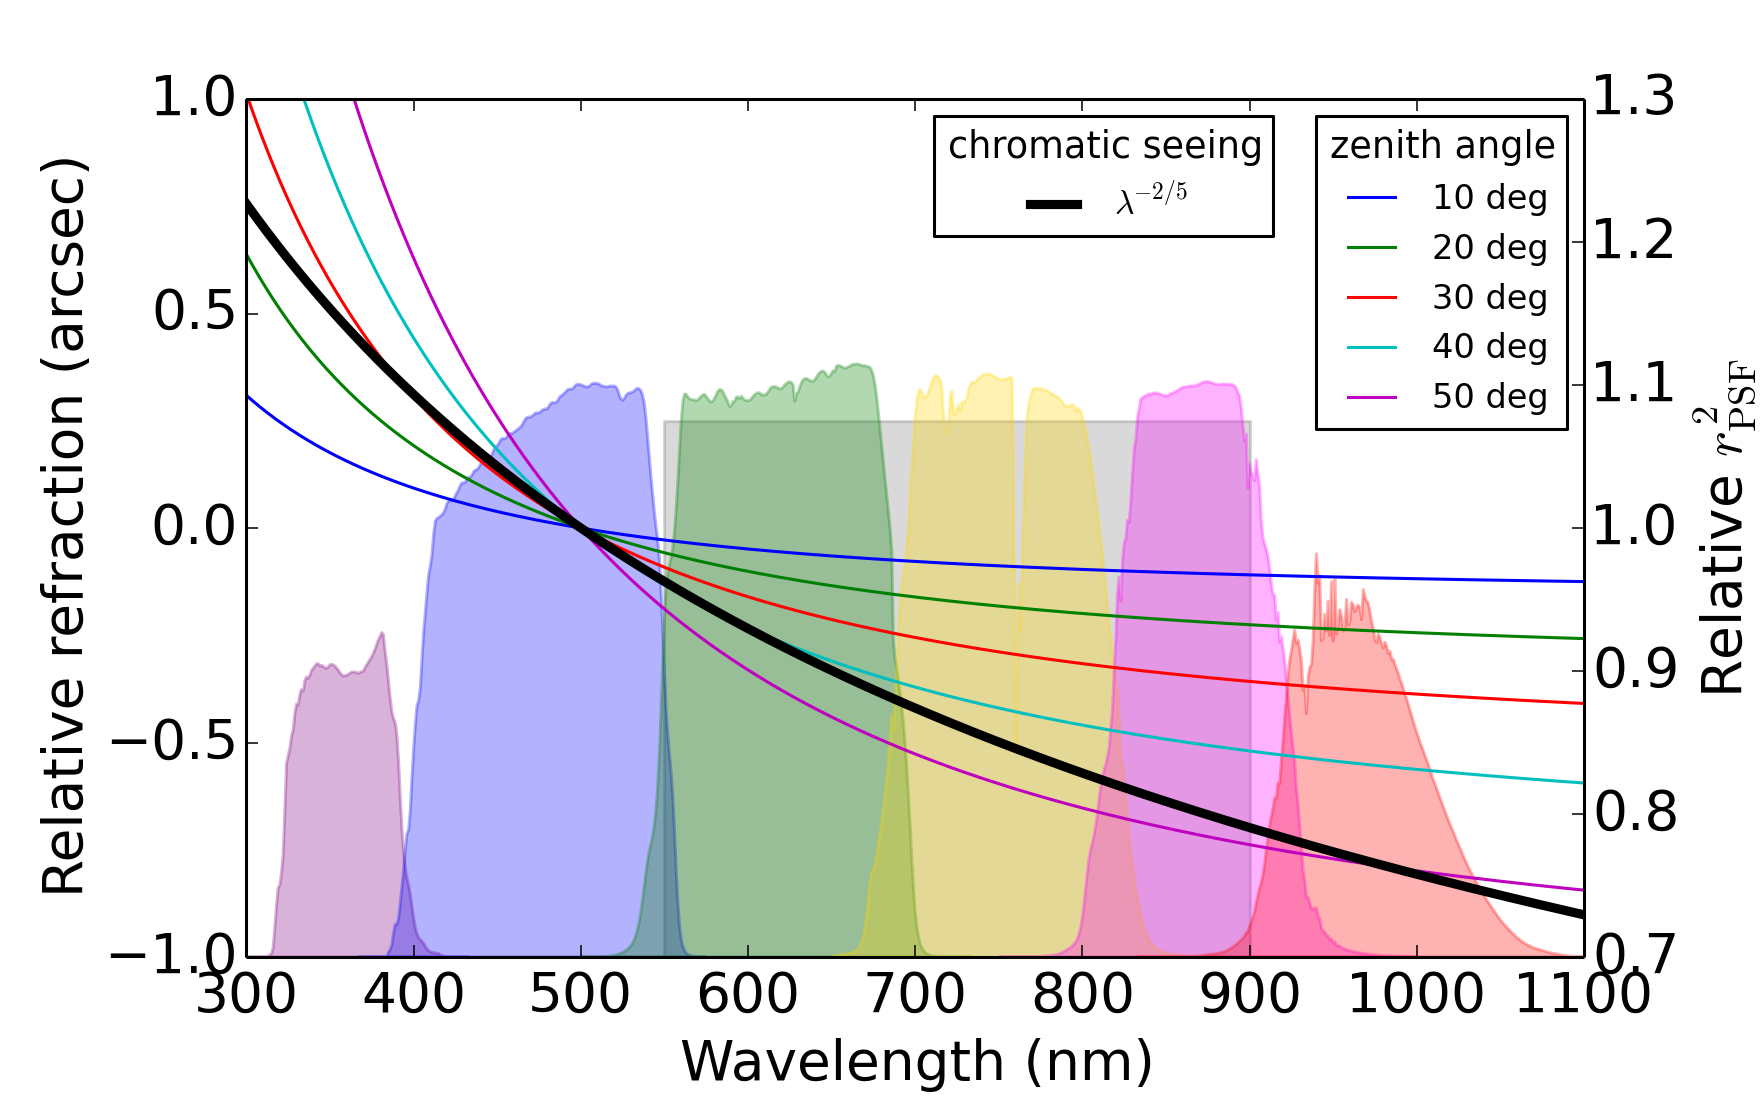 Wavelength Dependence Of Differential Chromatic Refraction Thin Colored Curves And Left Scale Seeing Thick Black Curve Right